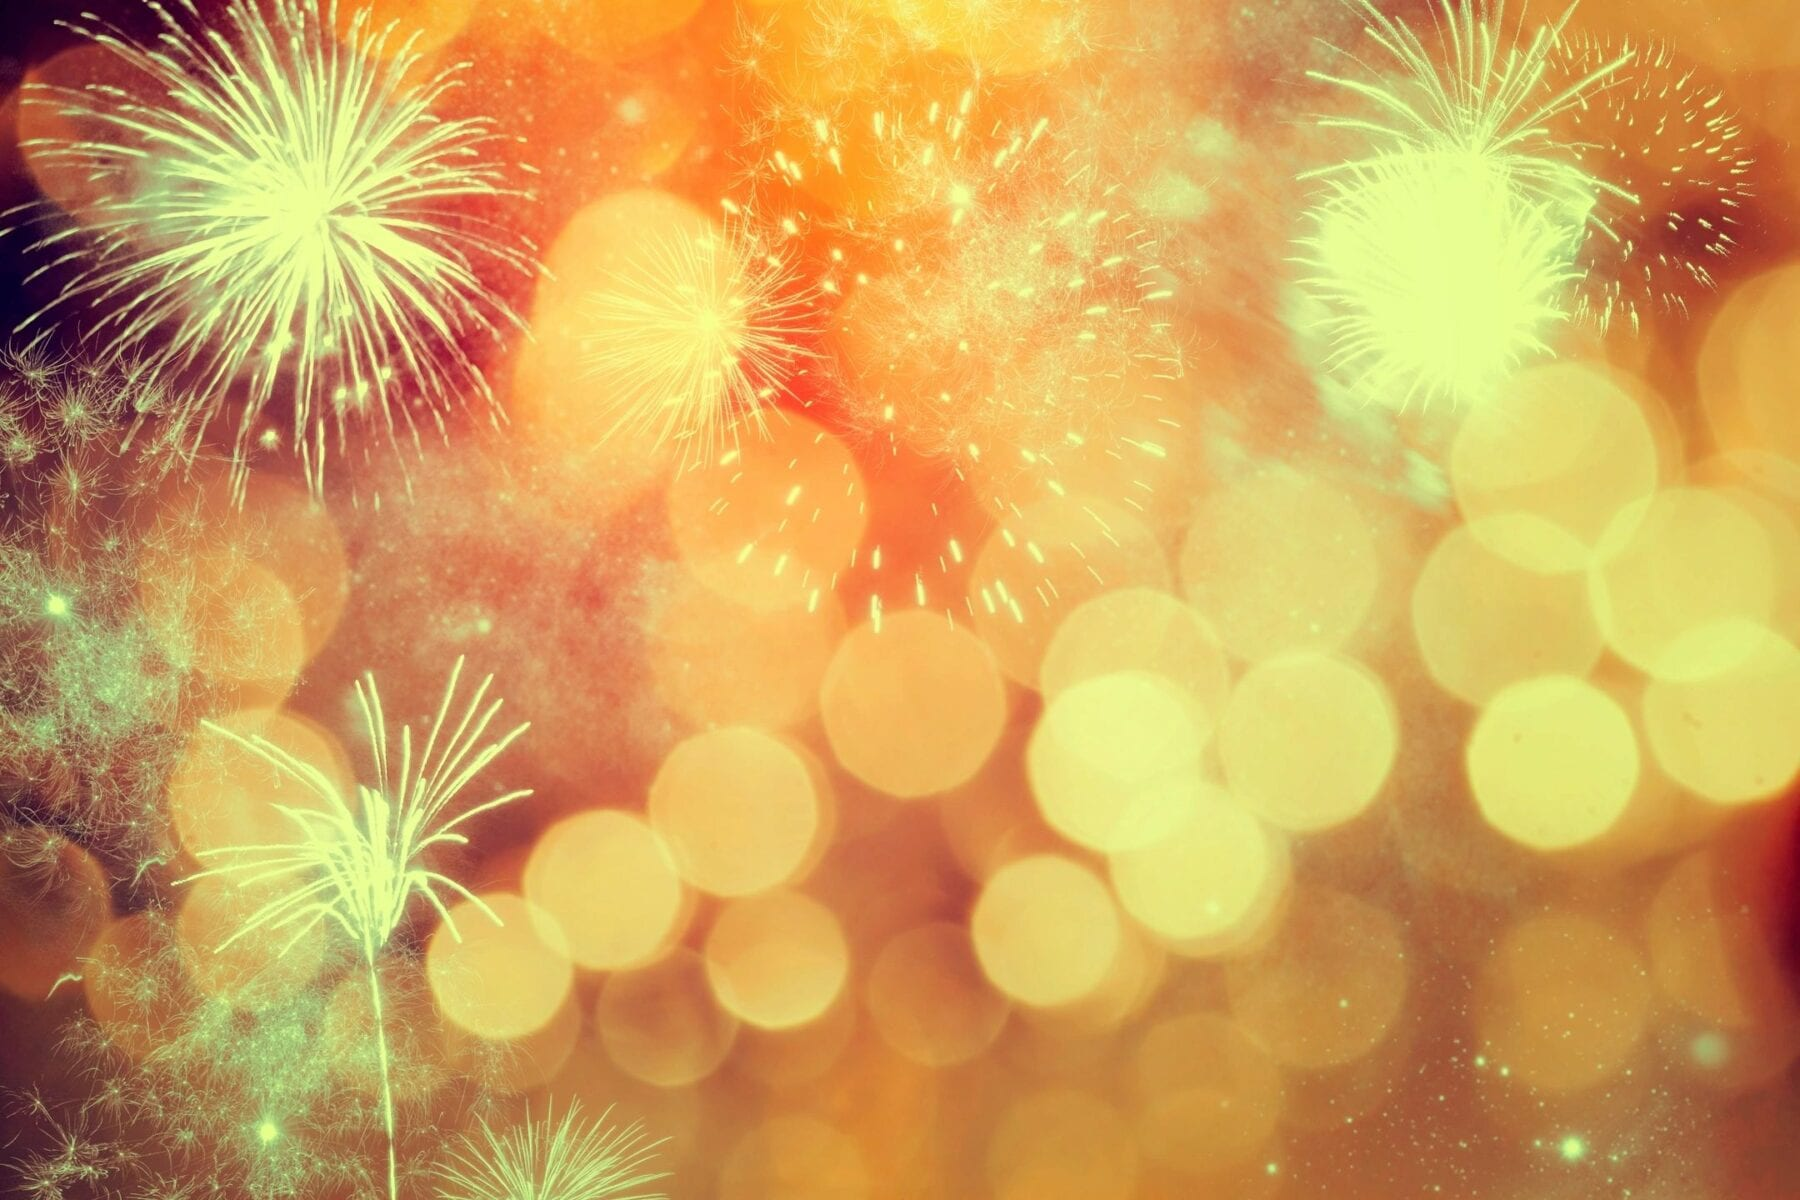 It should be understood that fireworks should only be handled by pyrotechnical professionals during professional displays. ©WordPress